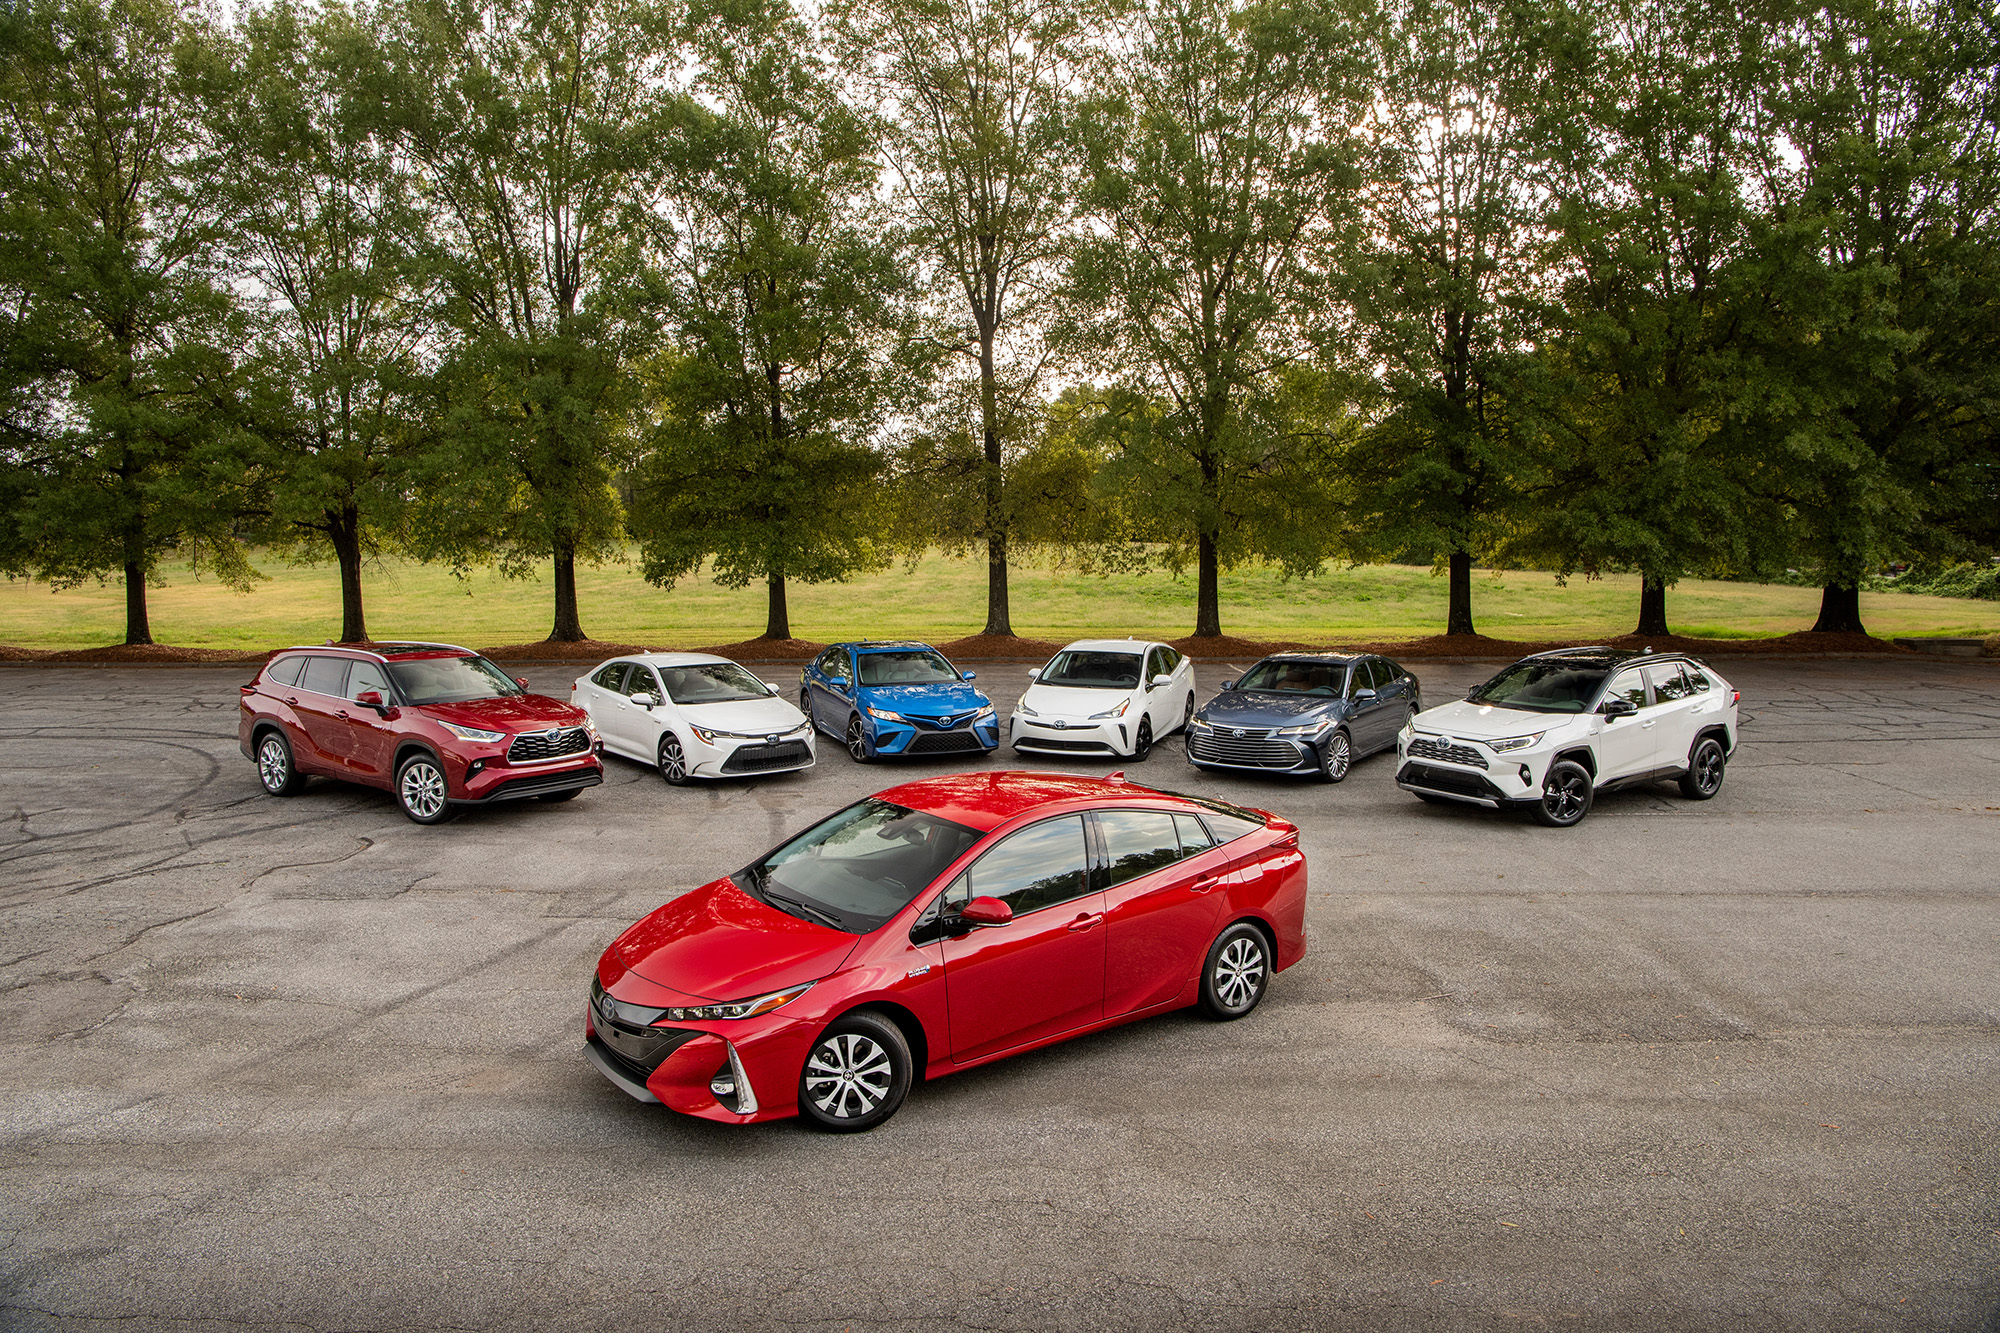 Toyota-Hybrids-group-outside-trees